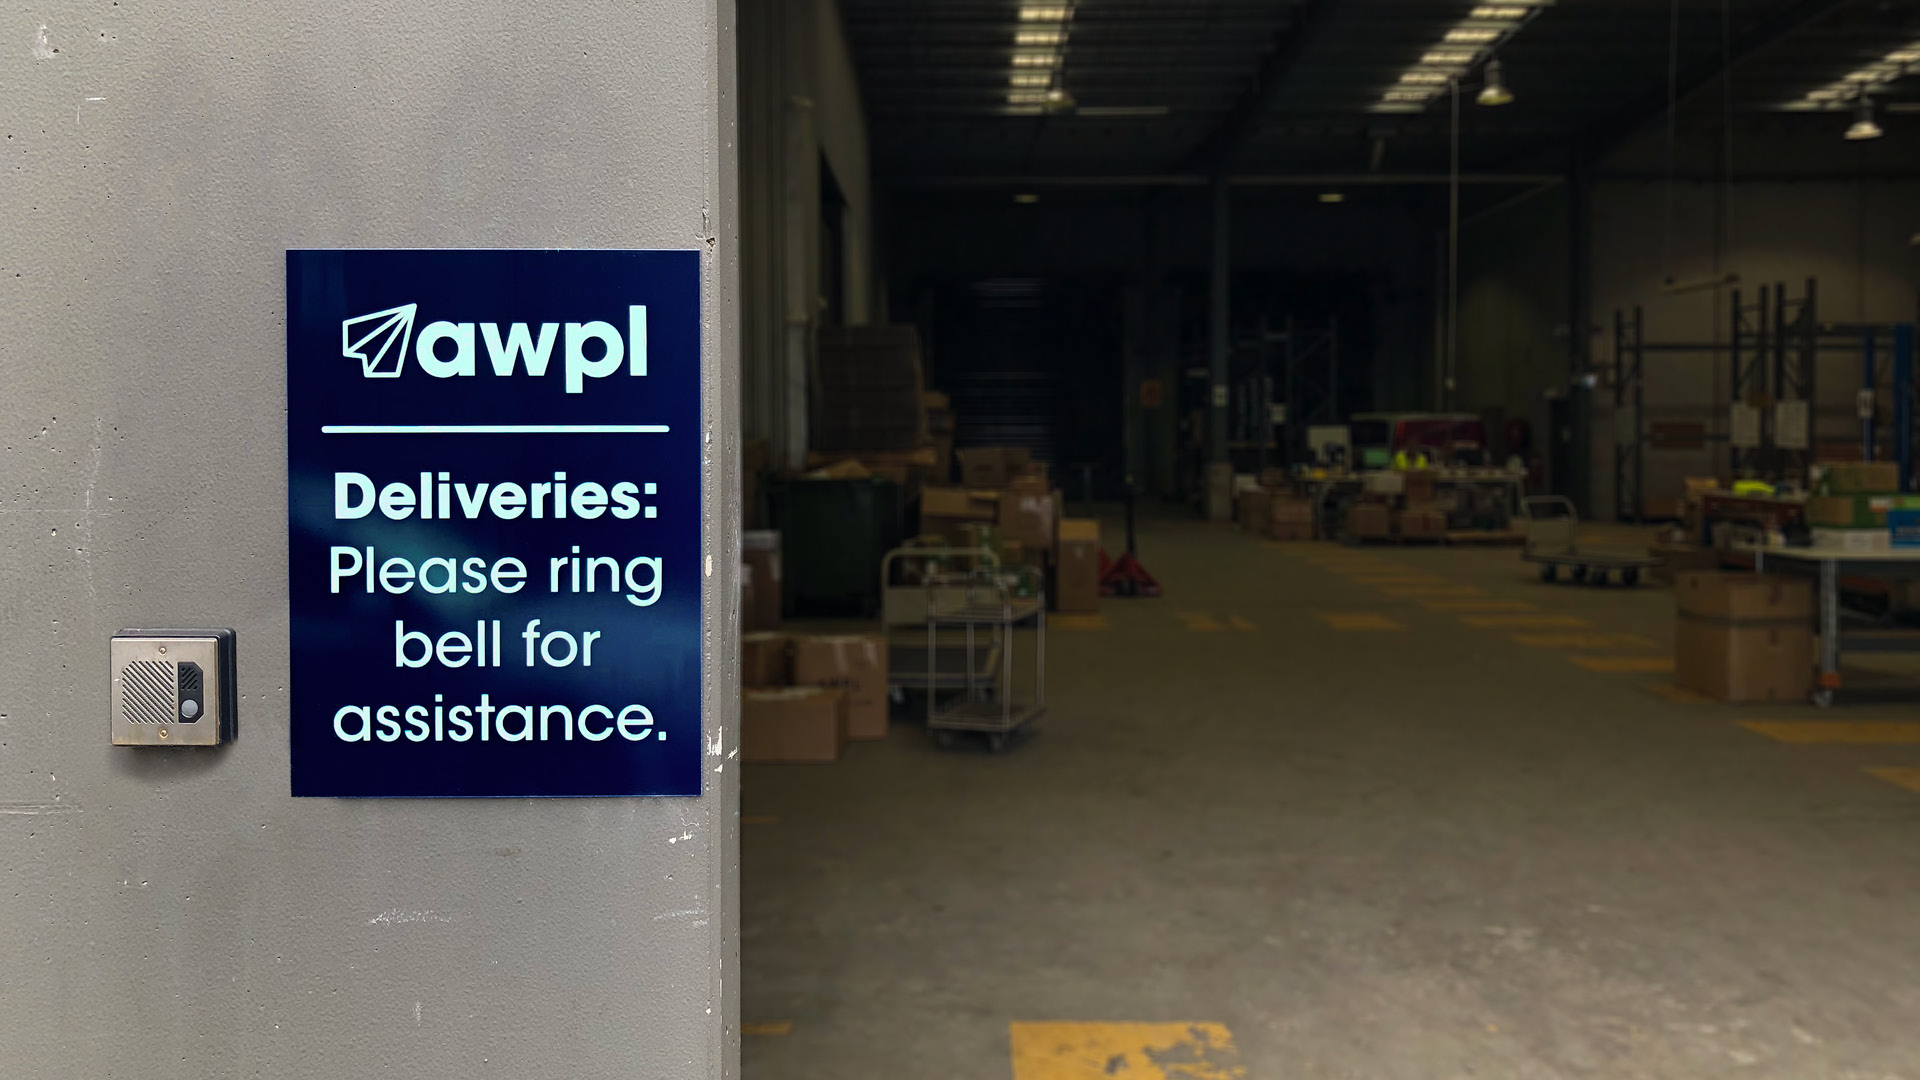 awpl Project Images15